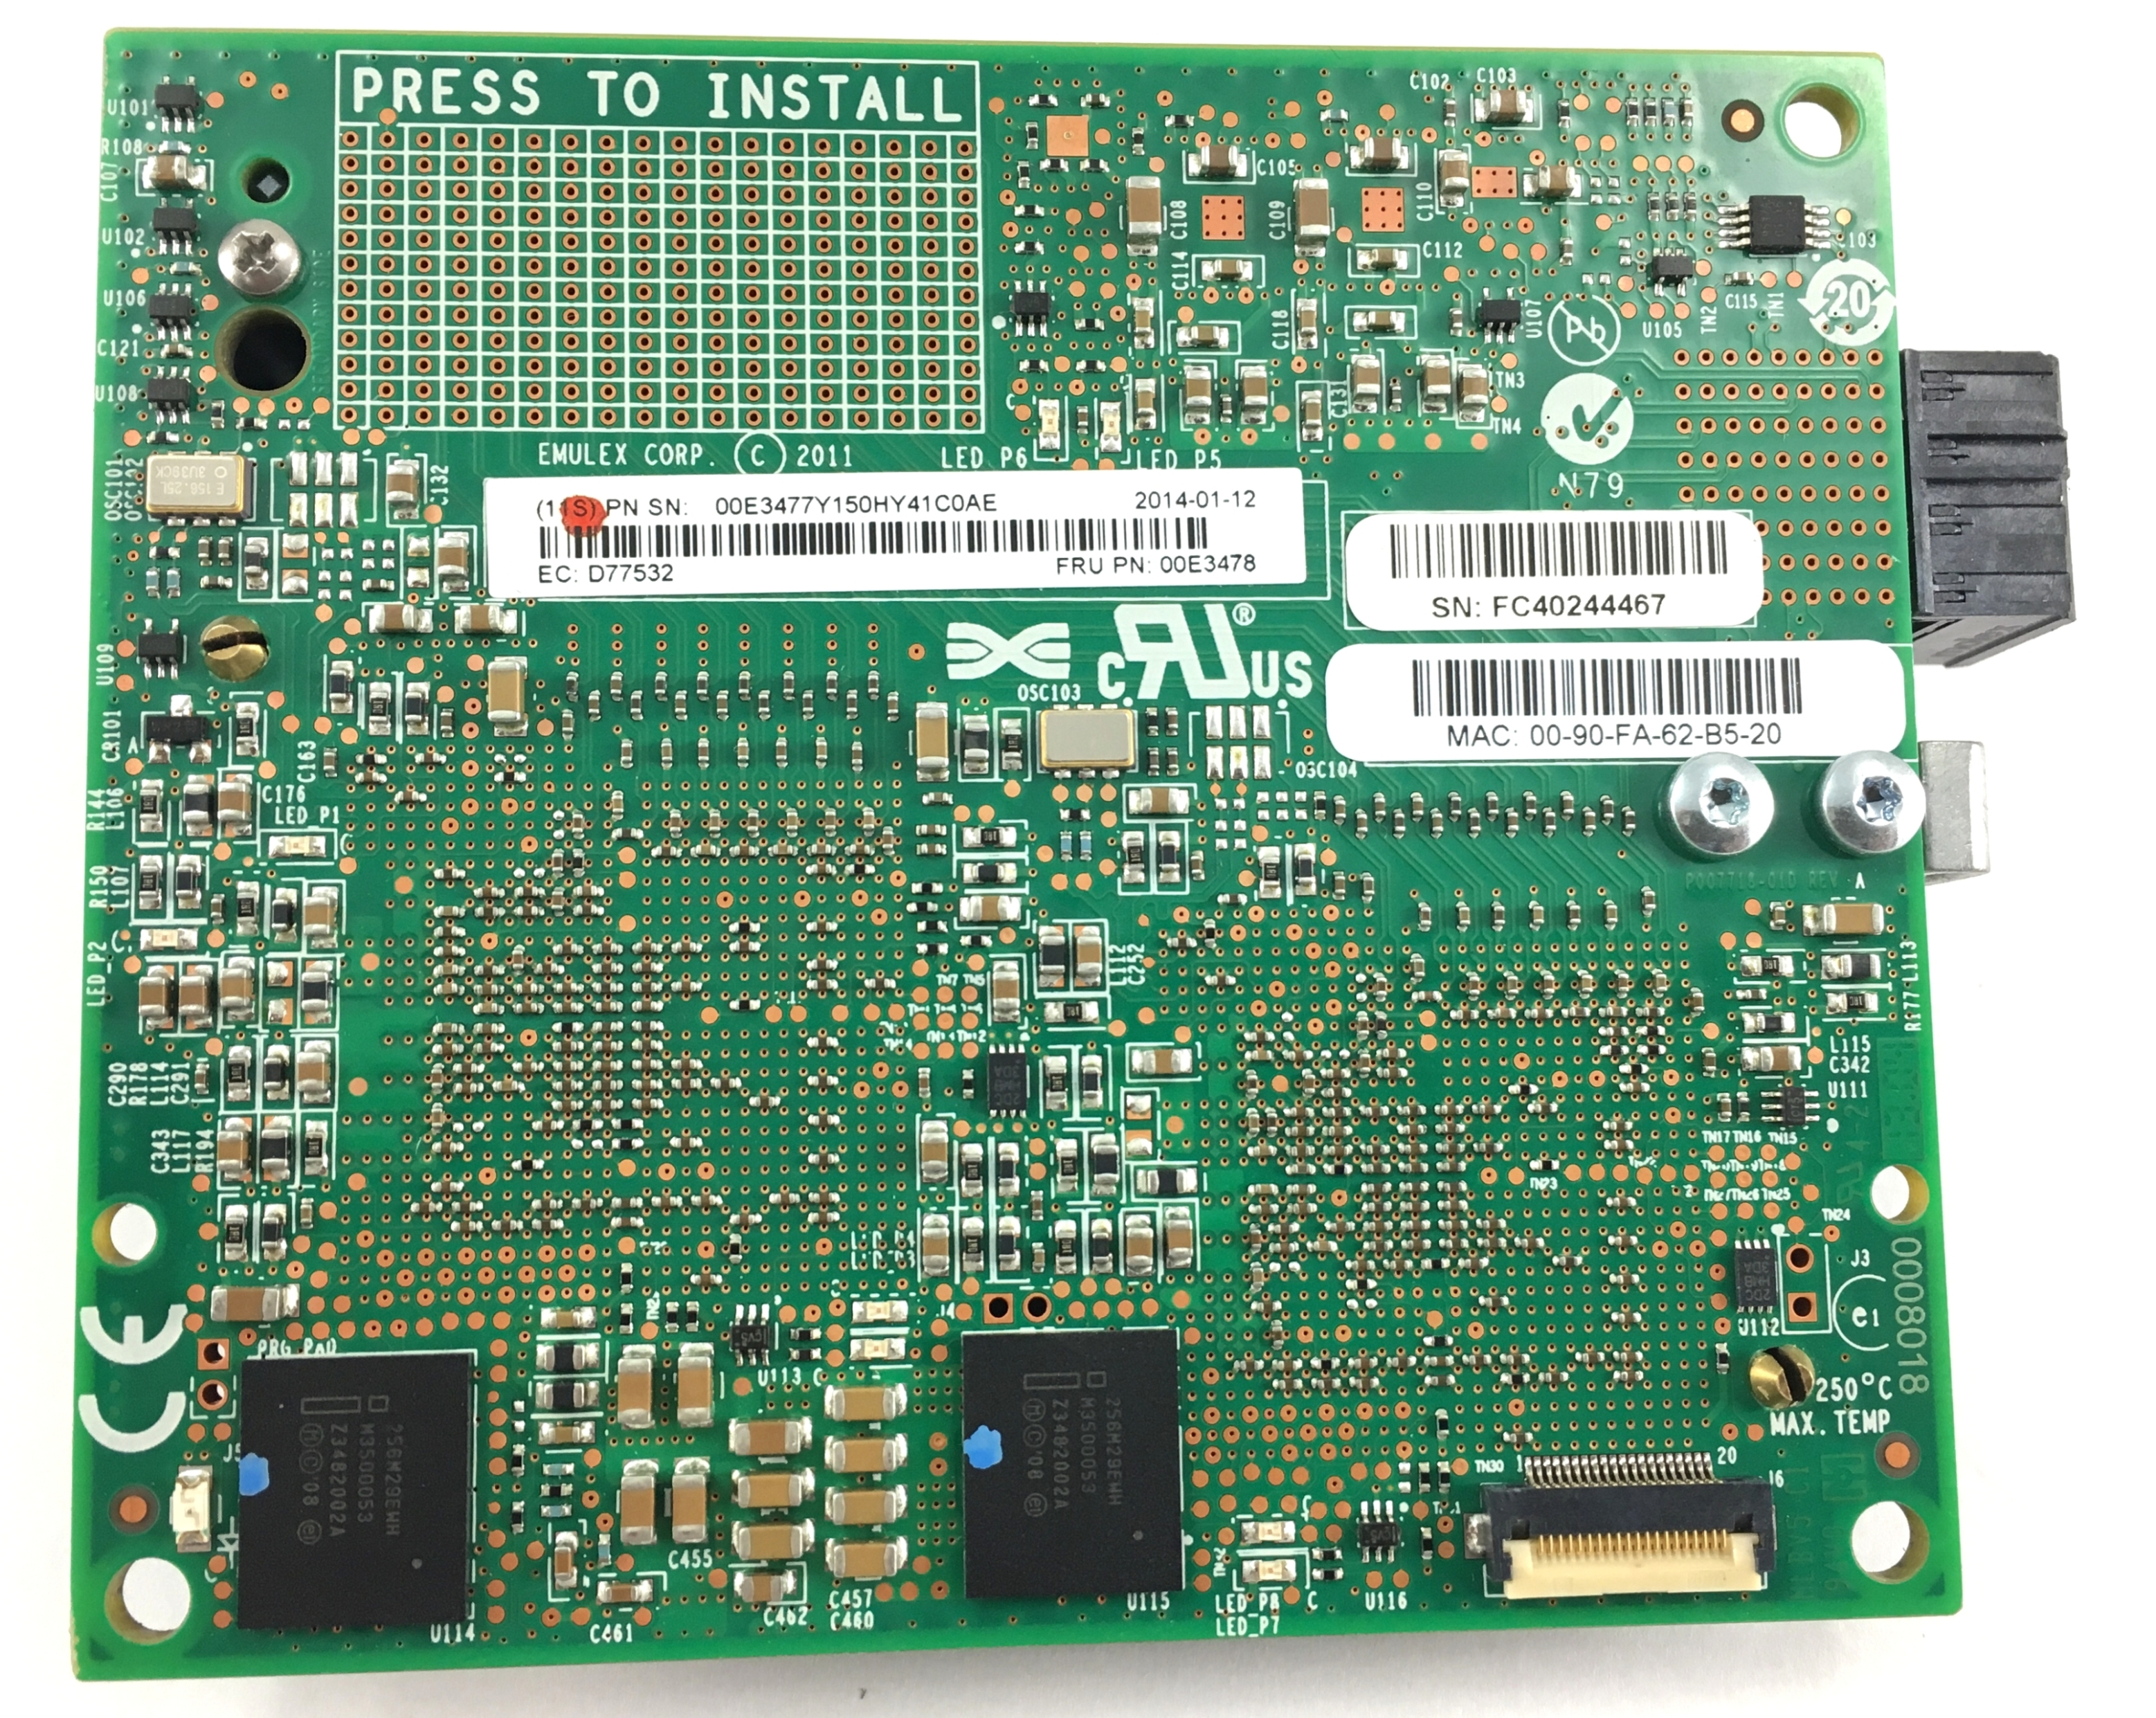 IBM Flex System Ethernet Adapter (00E3478)